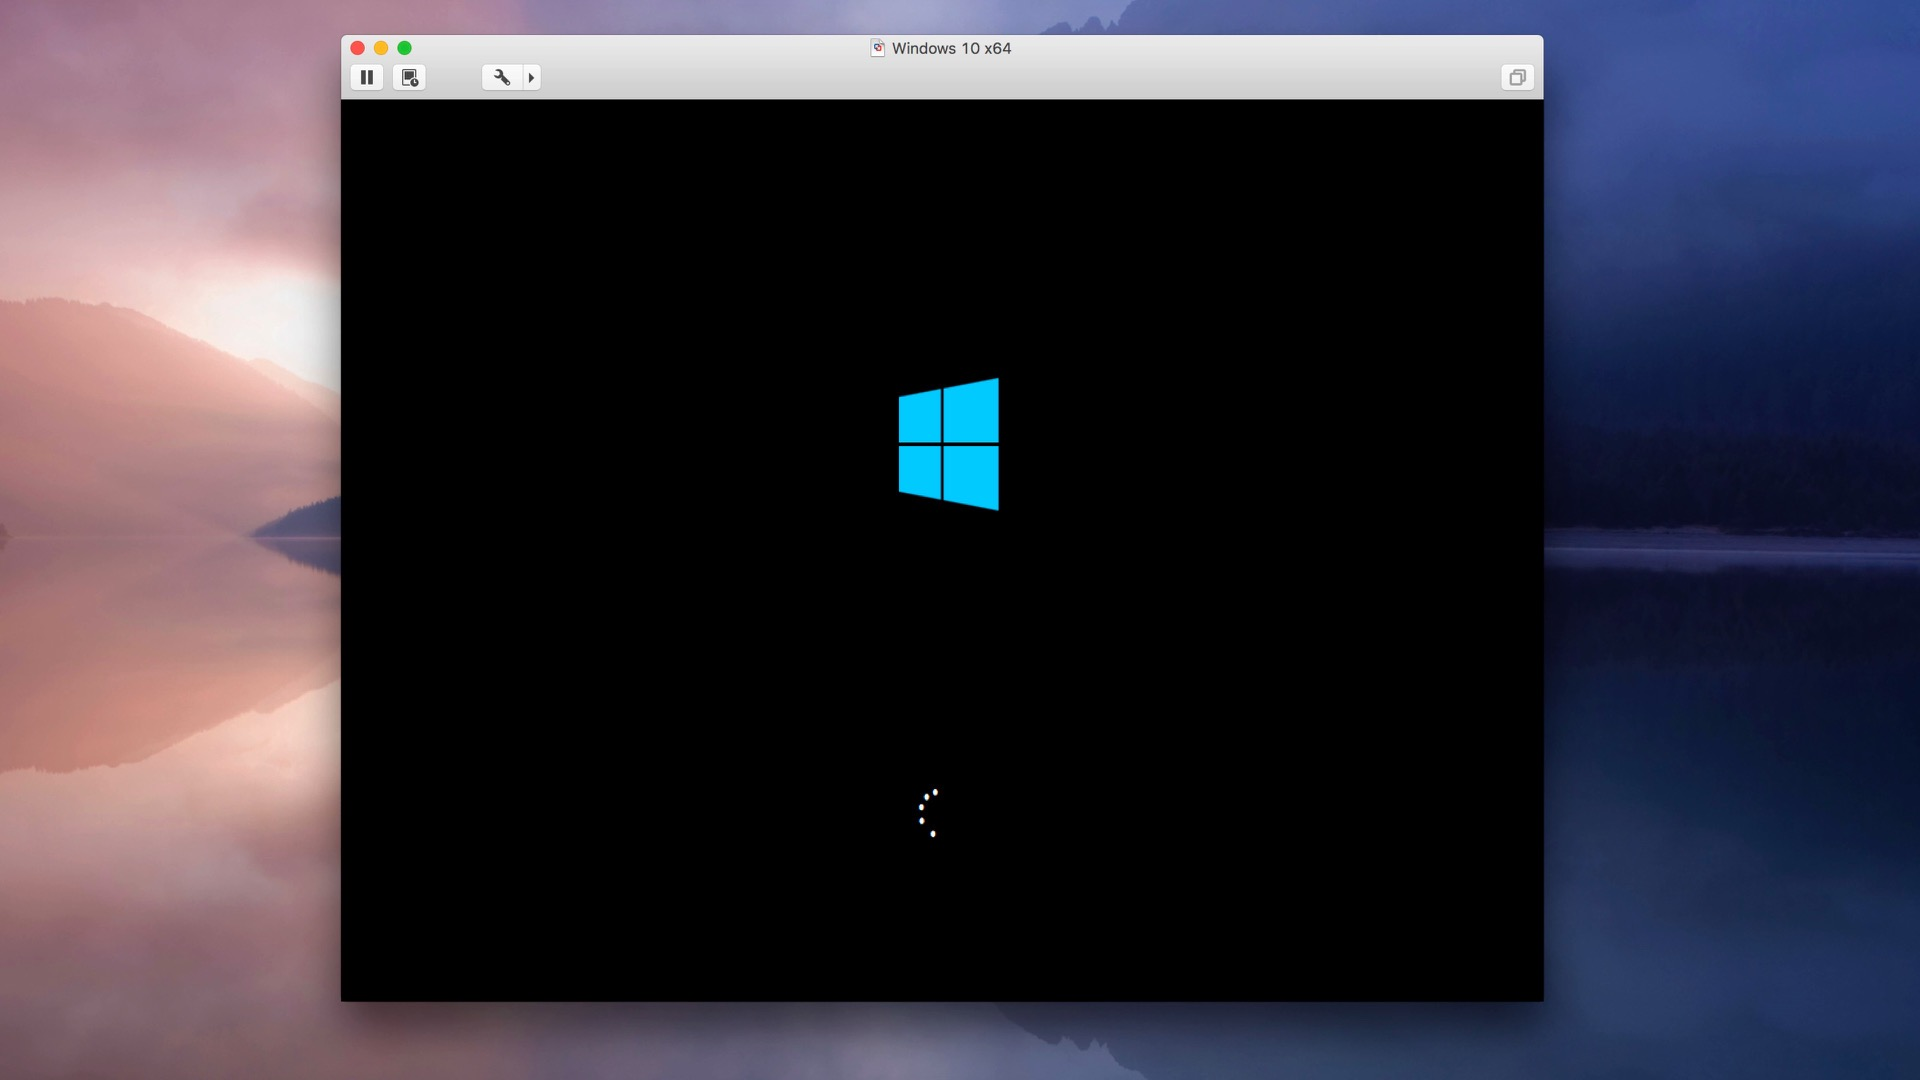 vmware mac os x on windows 10